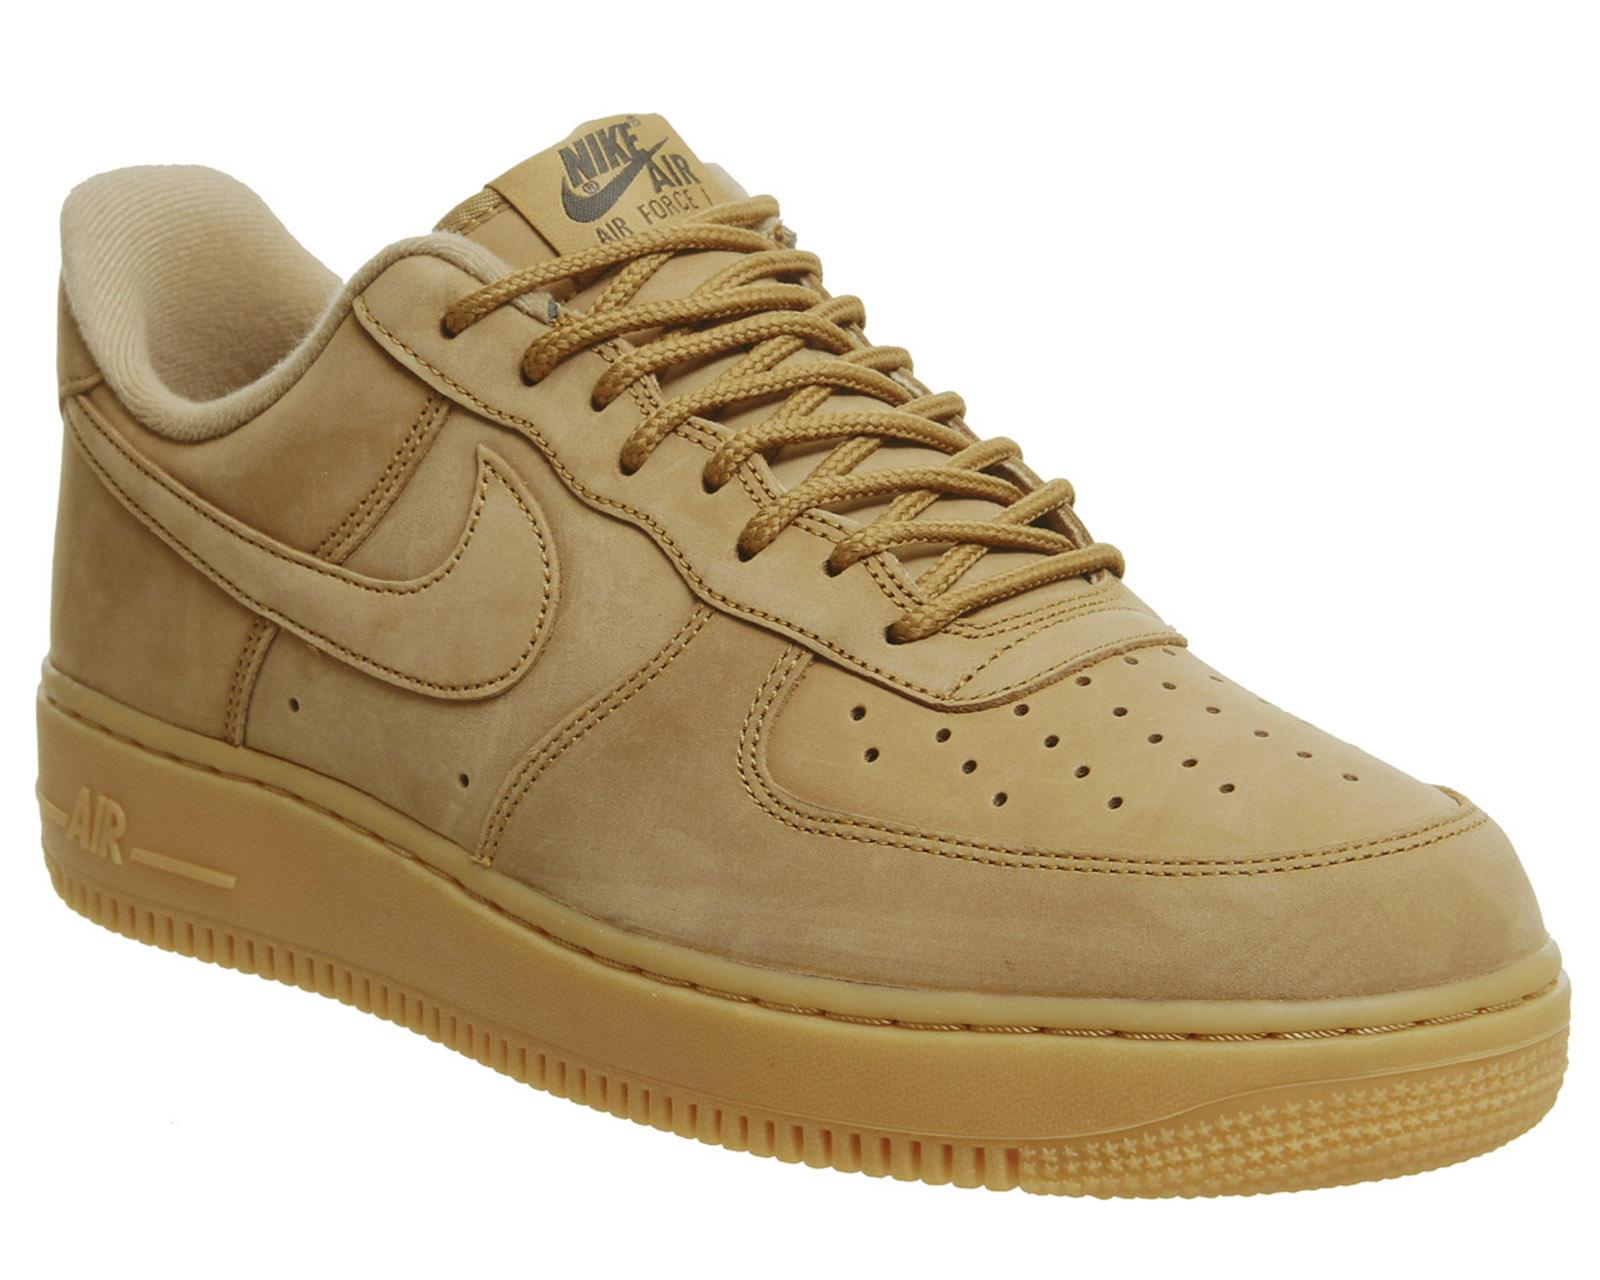 980ed5ce8c6c Nike. Women s Air Force One Trainers